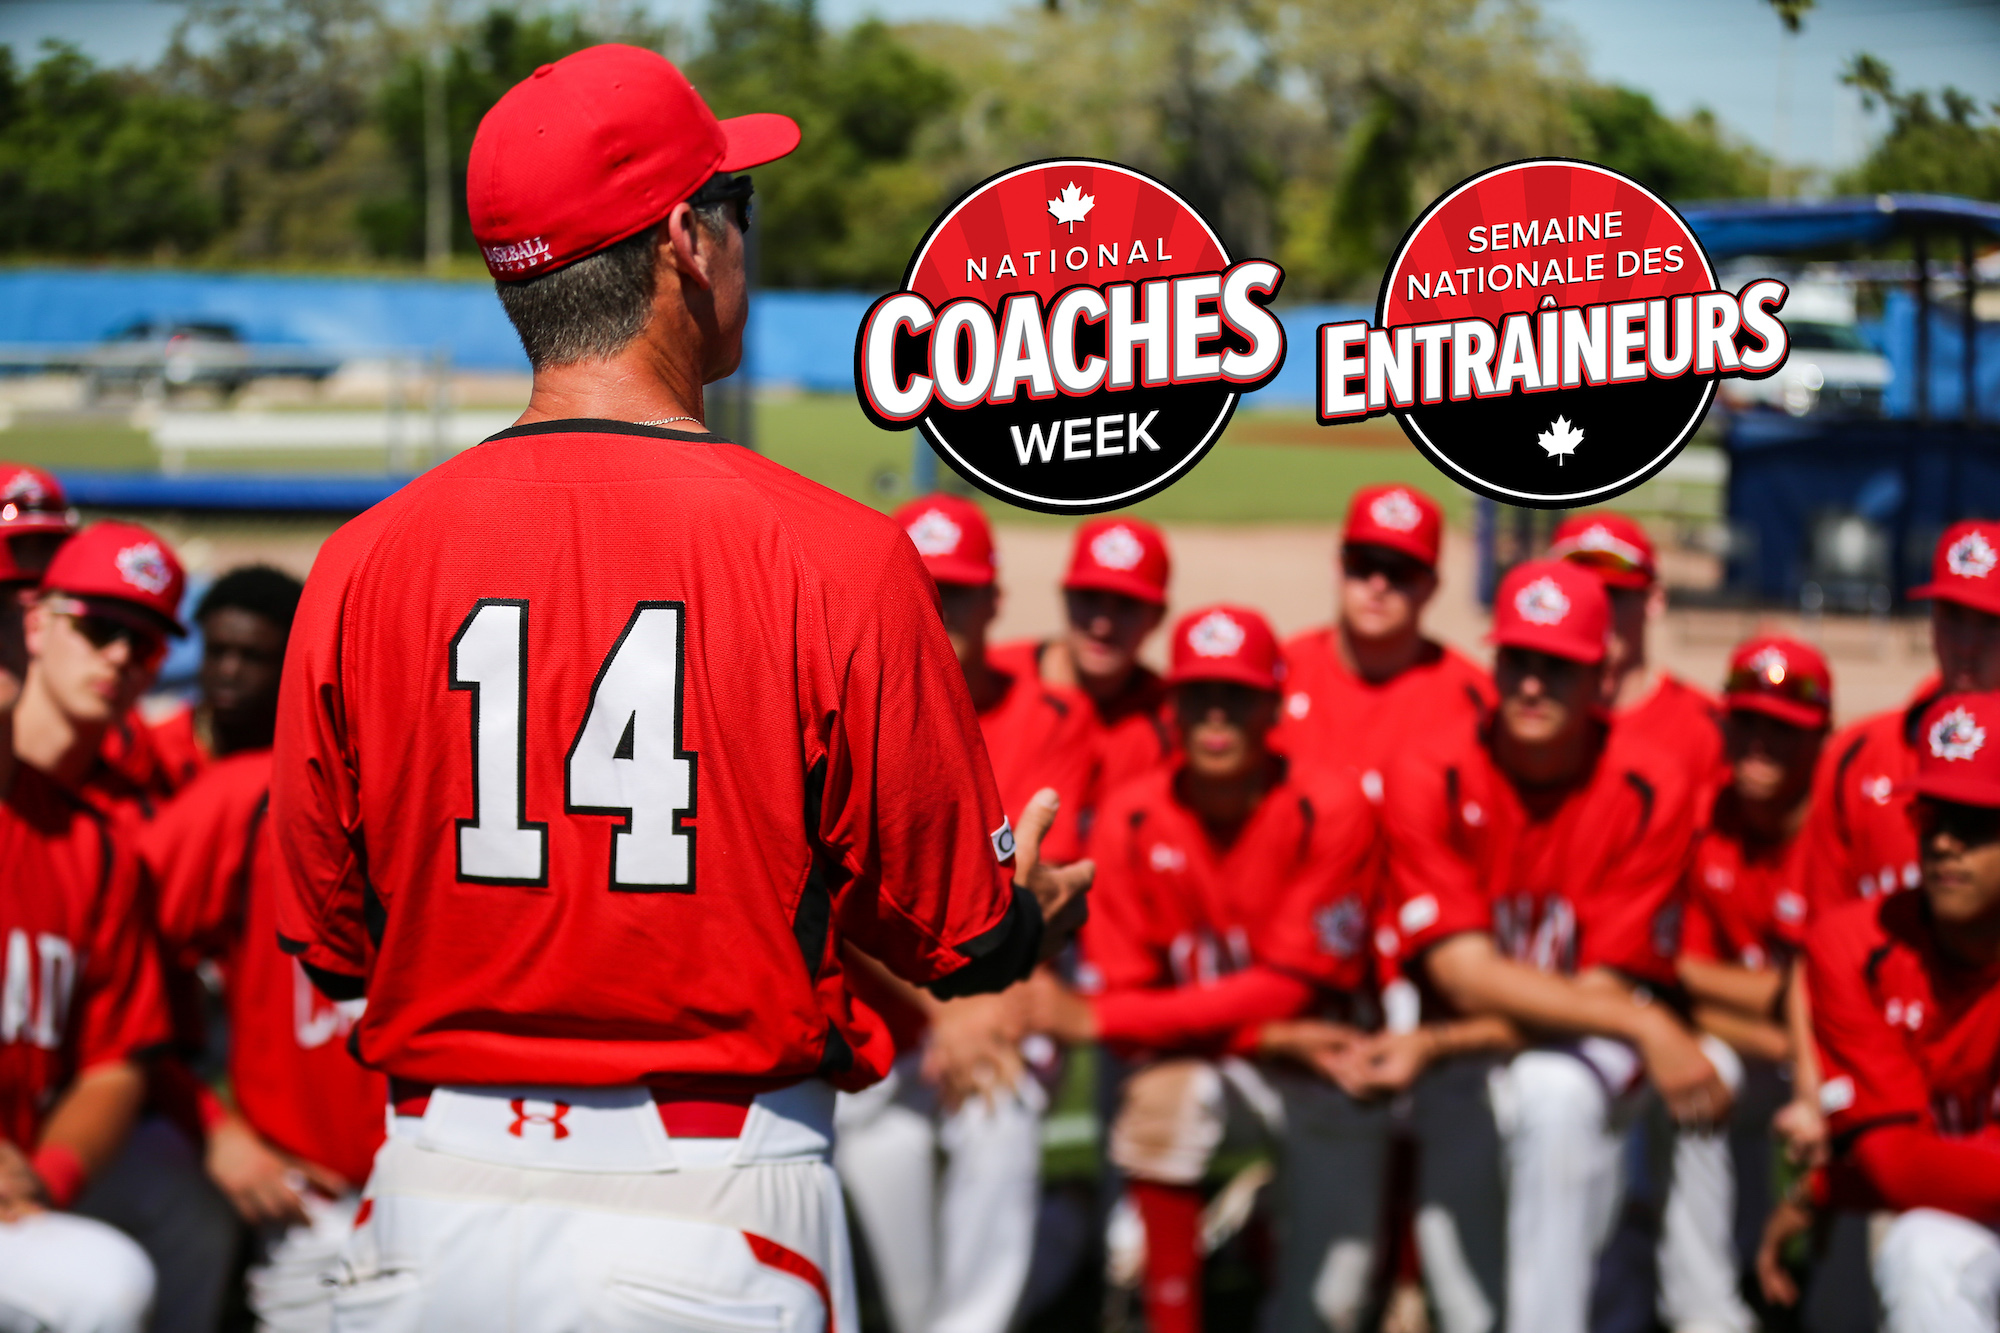 National Coaches Week!